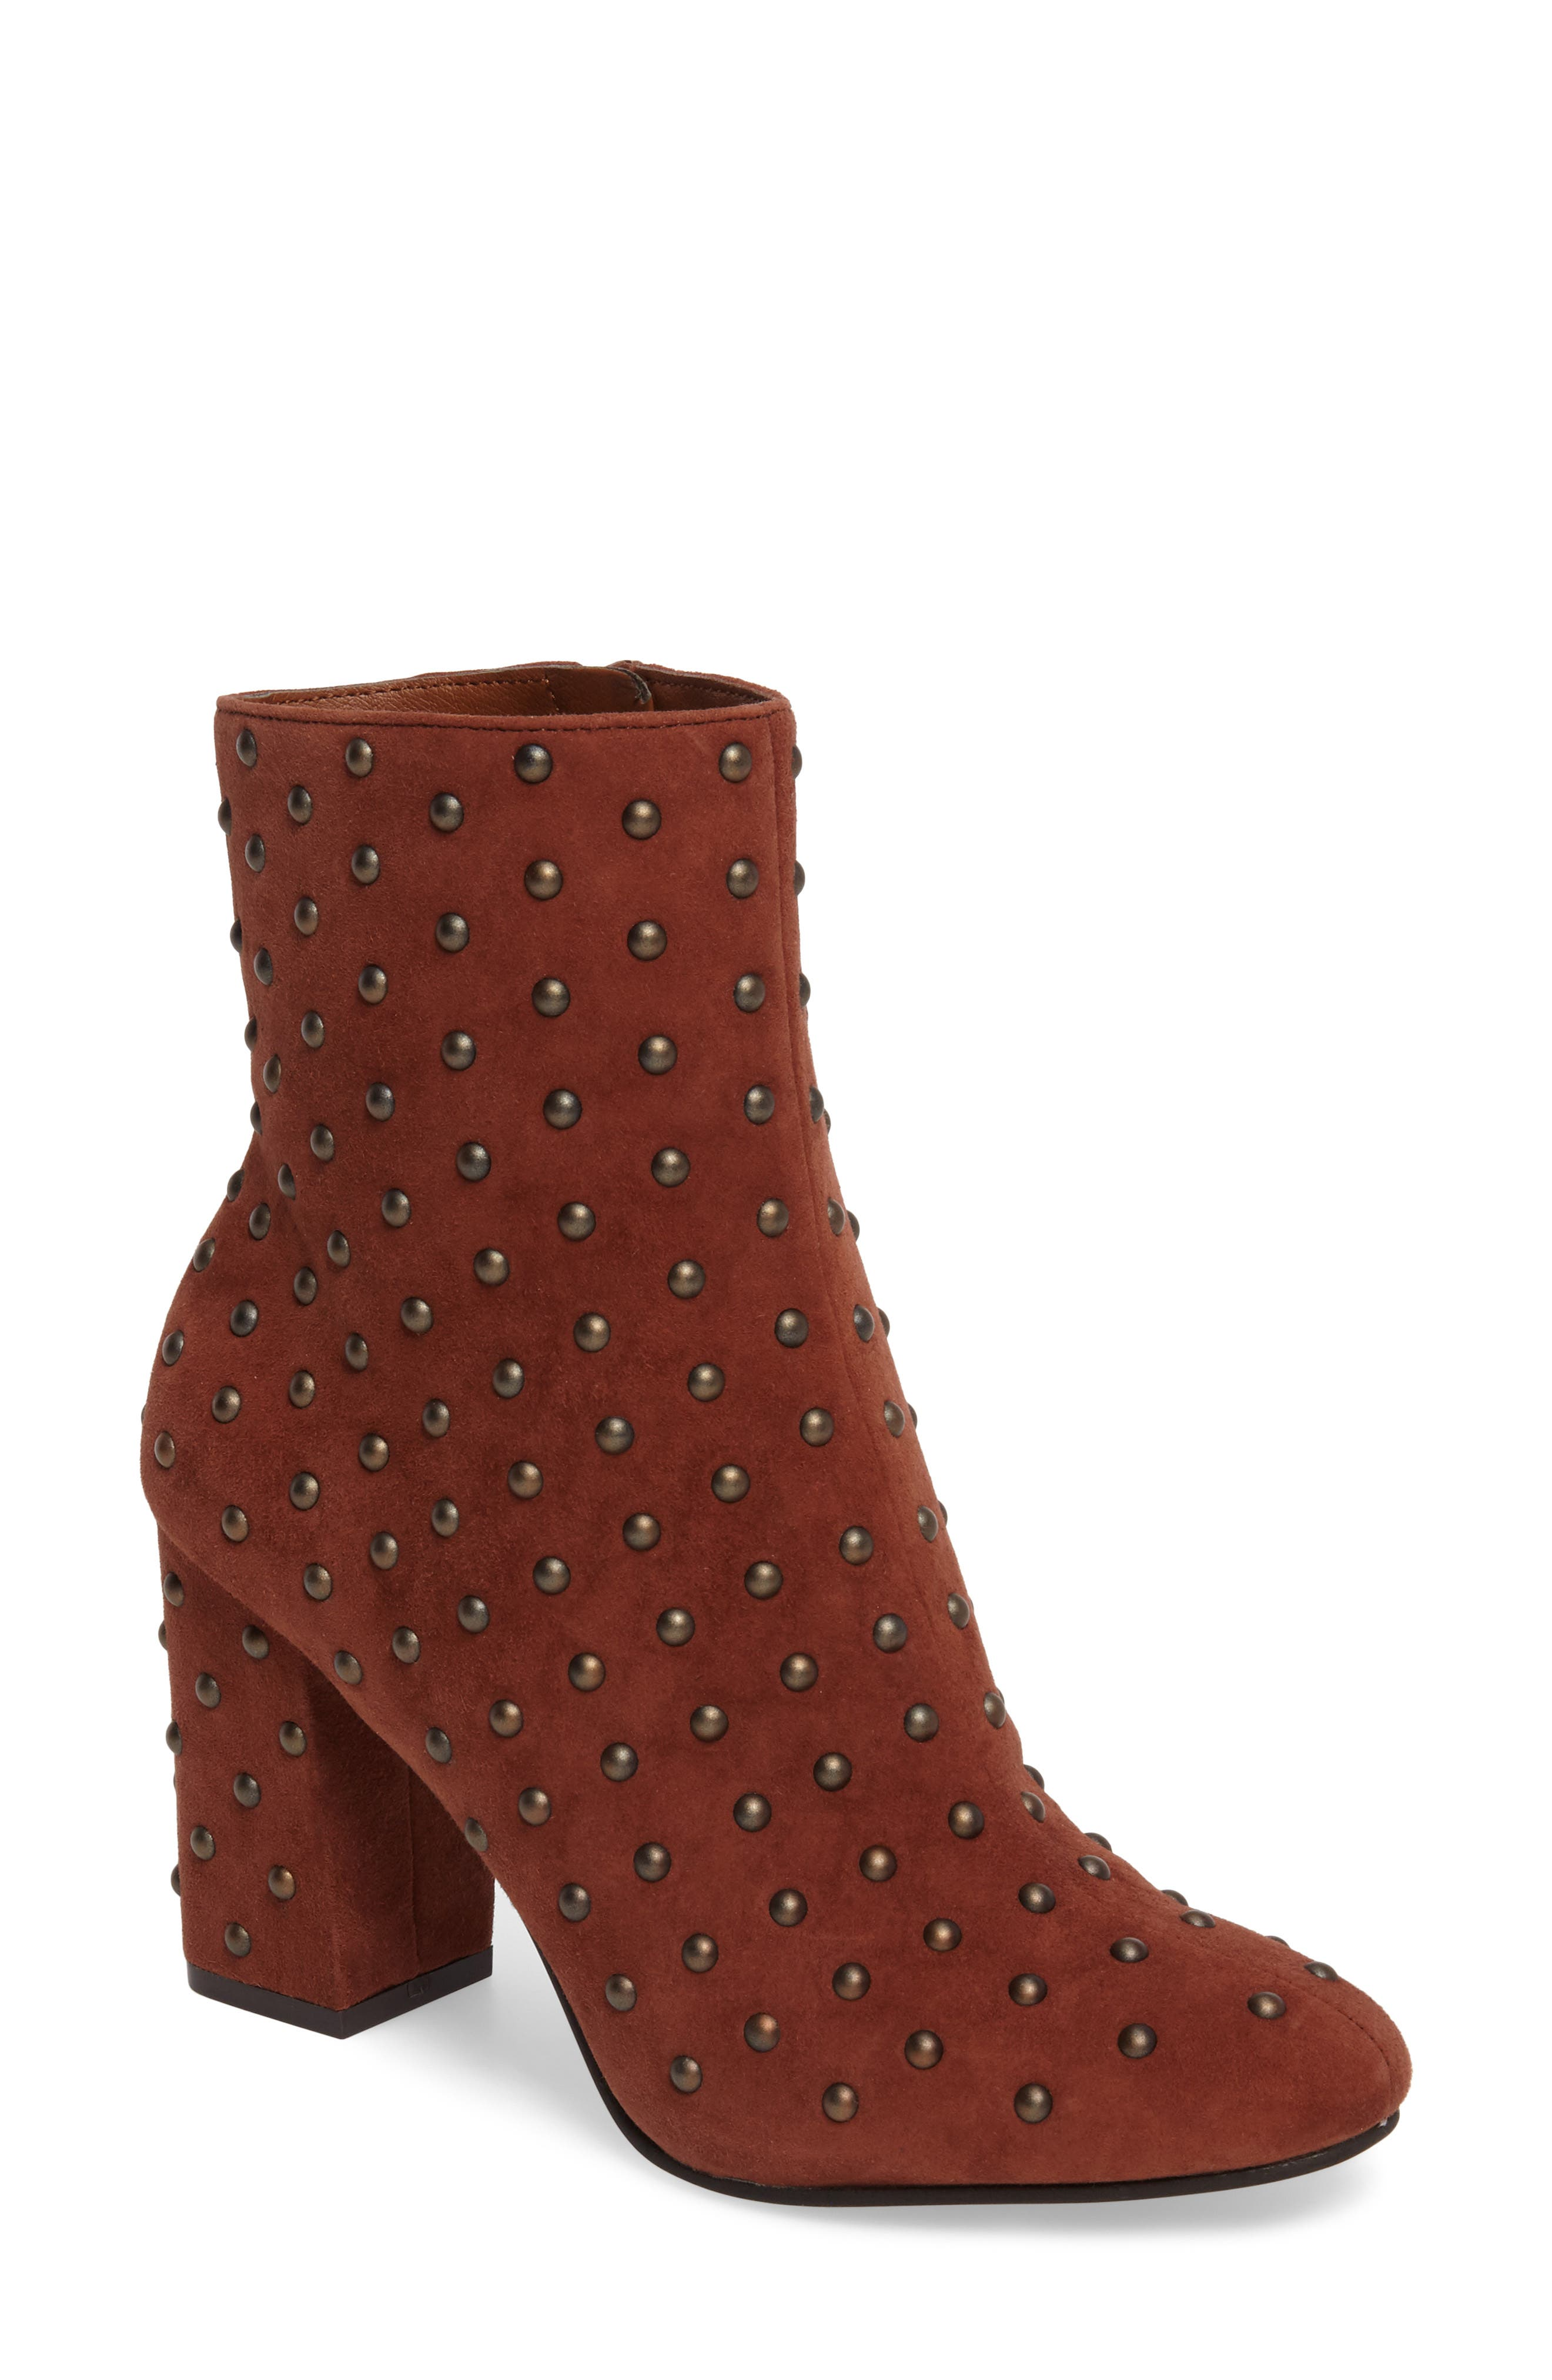 Alternate Image 1 Selected - Lucky Brand Wesson II Studded Bootie (Women)